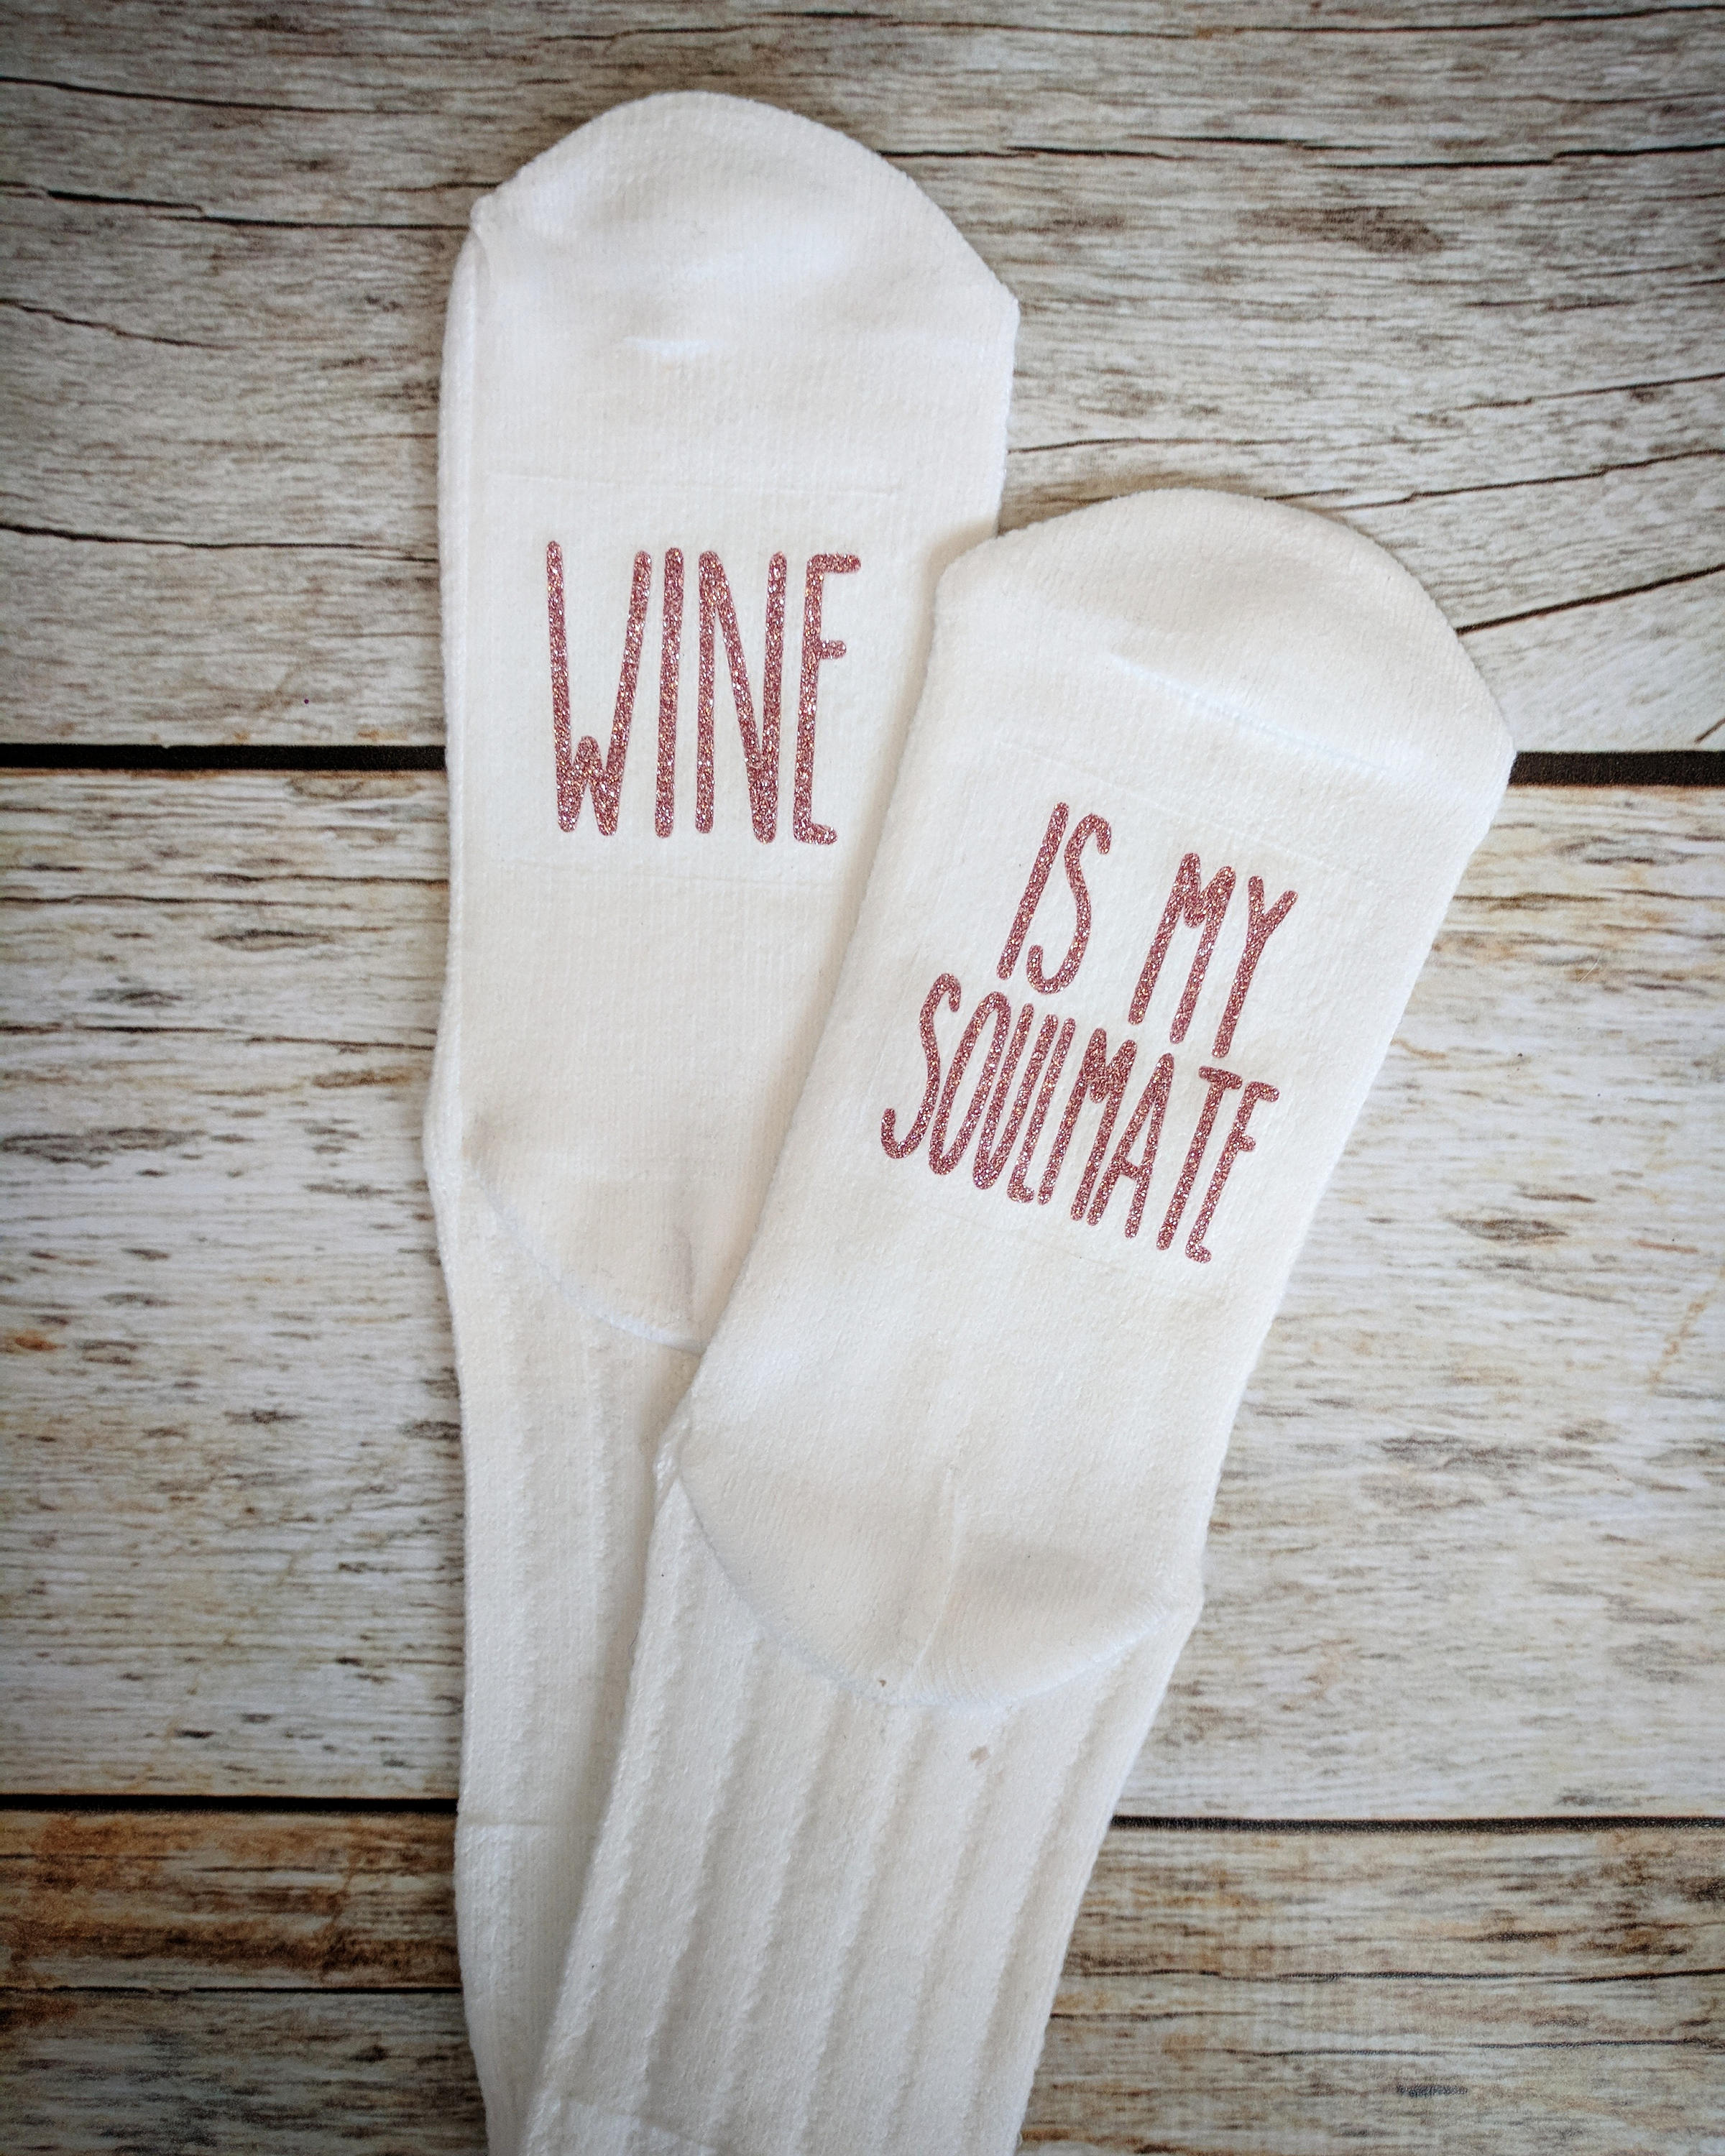 Wine socks from 2troubleboys Etsy // Price: $12.95 // (Image: 2troubleboys //{&amp;nbsp;}http://etsy.me/2nIT9xy)<p></p>